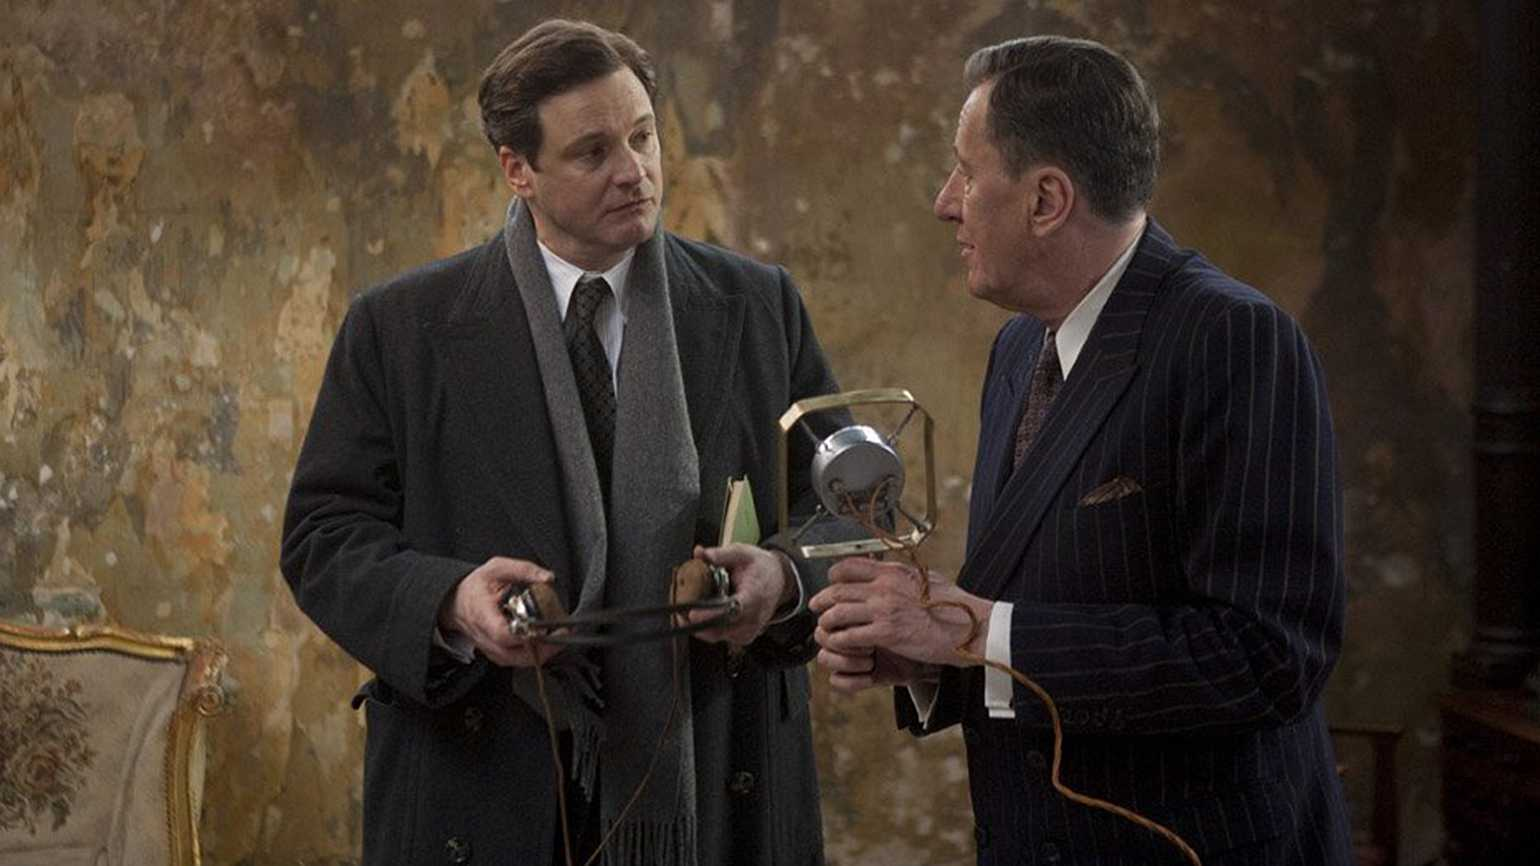 Colin Firth (left) and Geoffrey Rush in a scene from The King's Speech